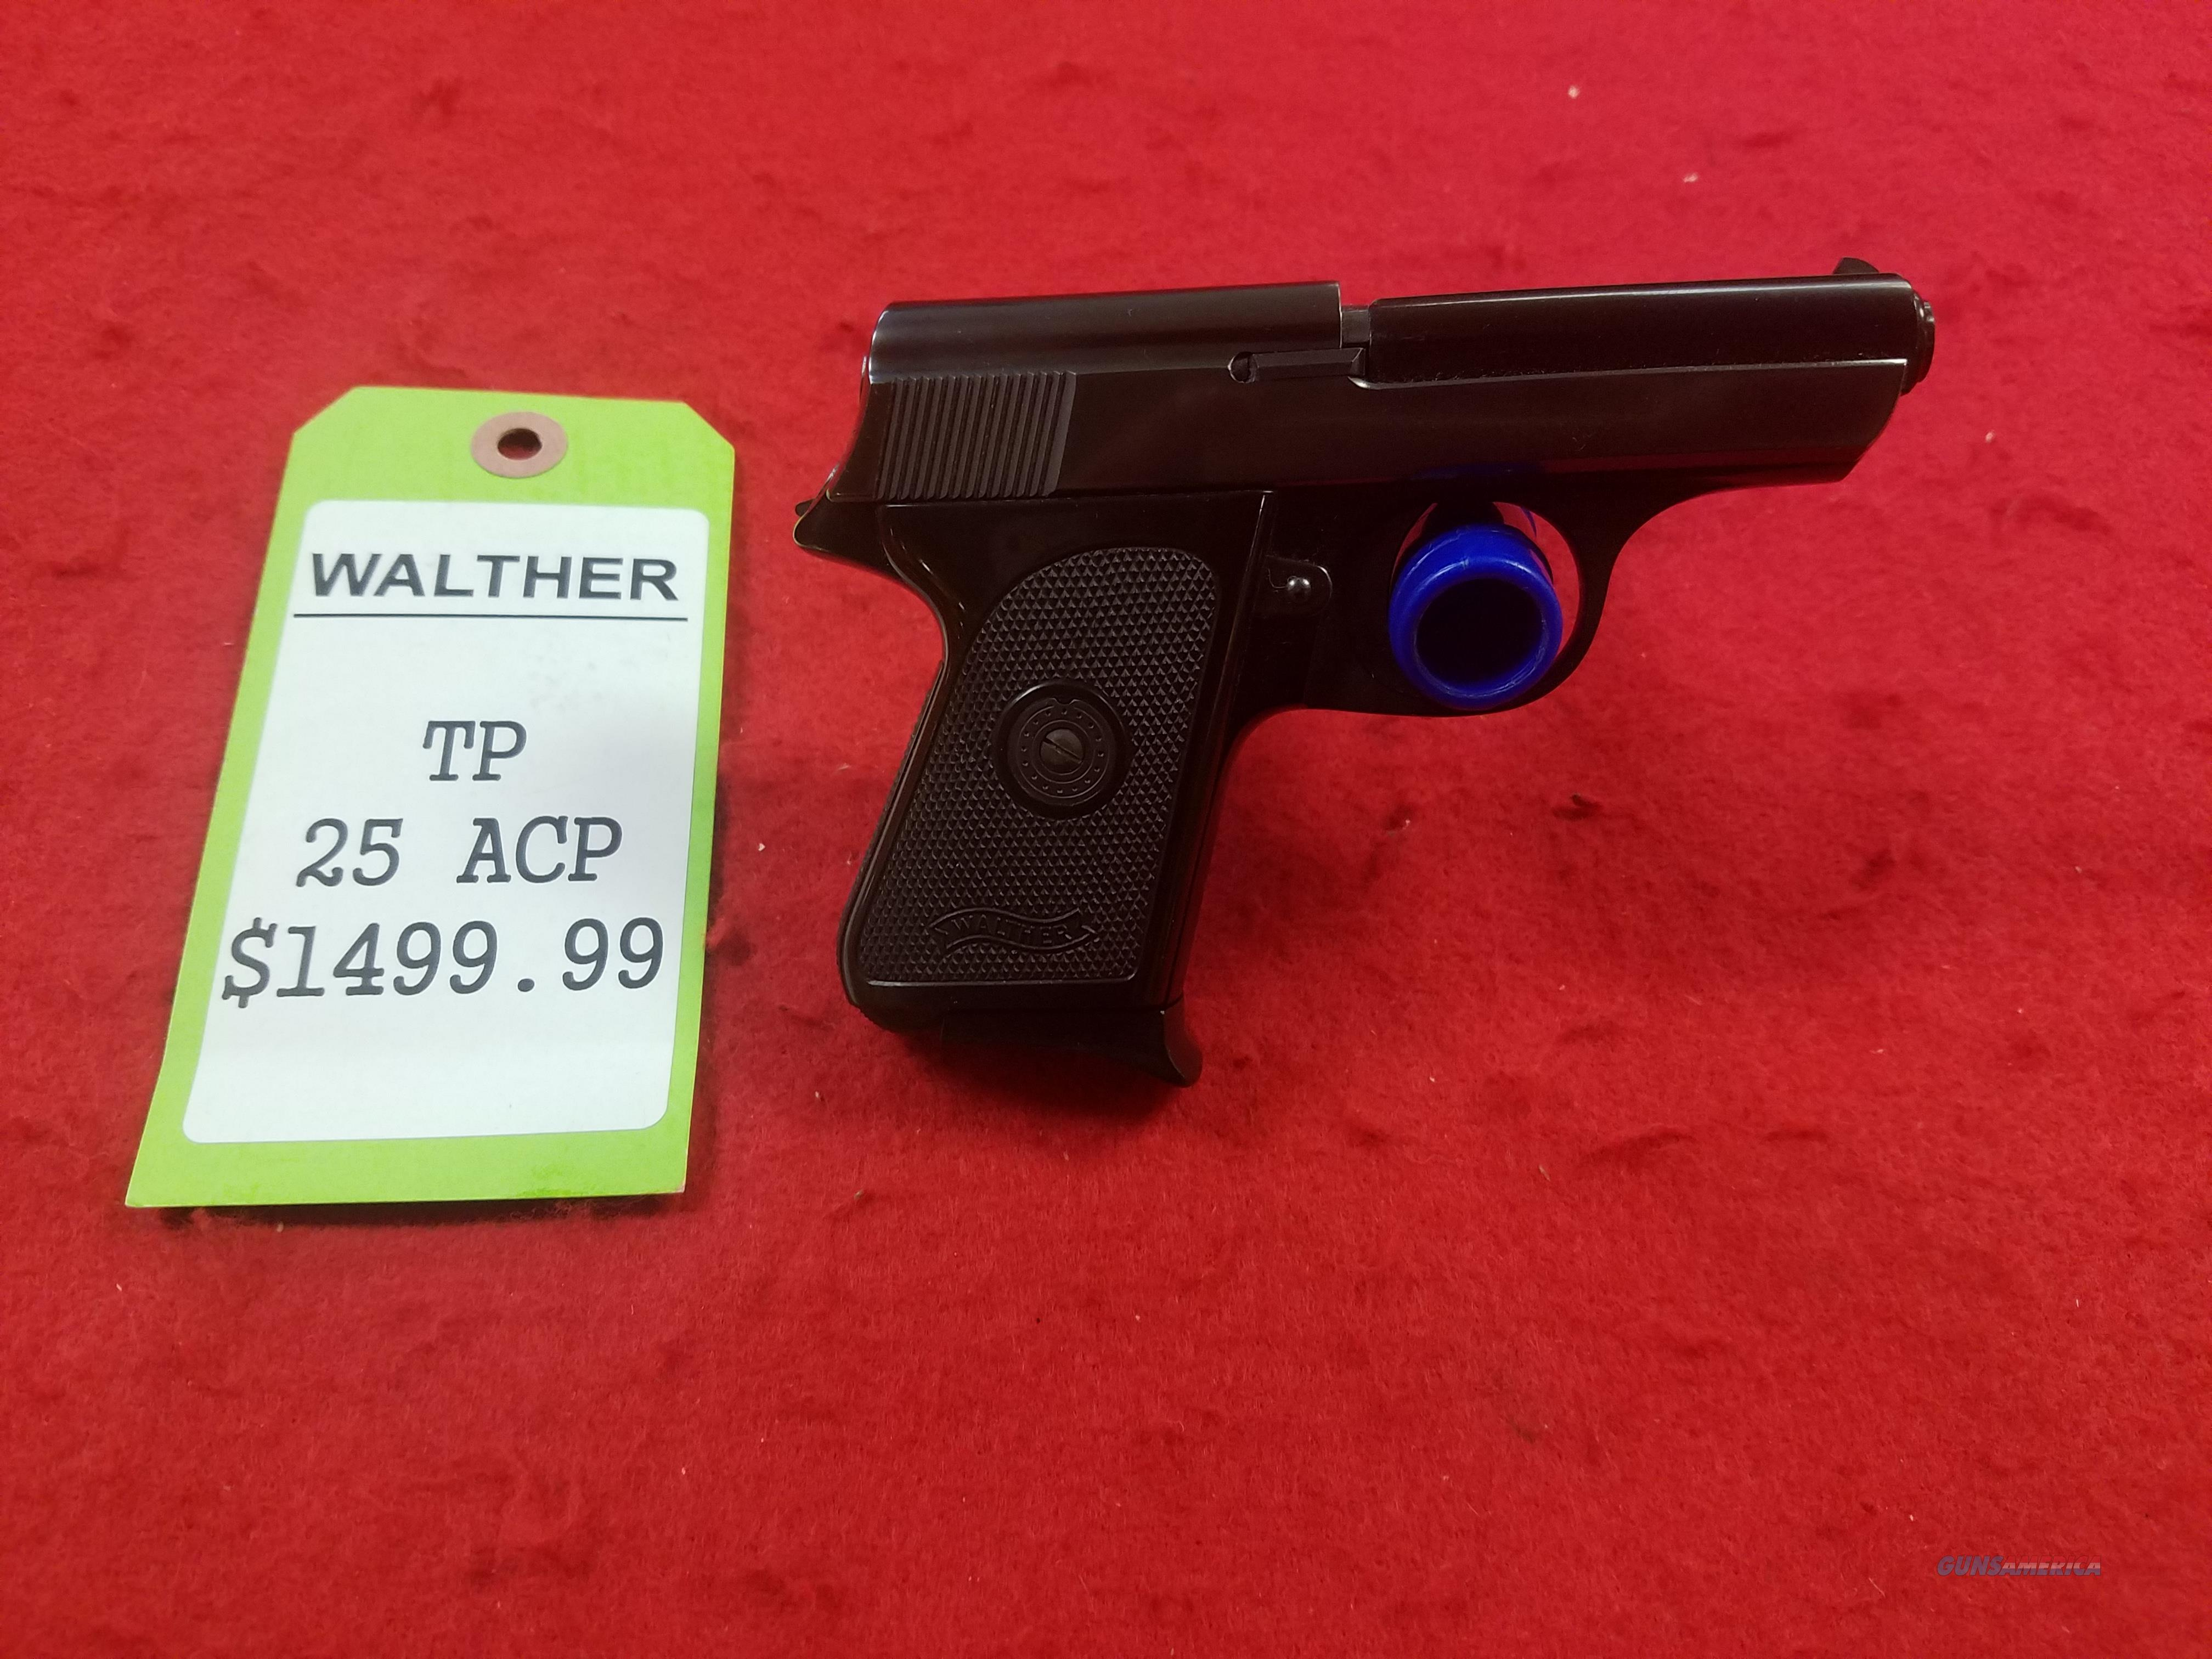 Walther TP  Guns > Pistols > Walther Pistols > Pre-1945 > Other